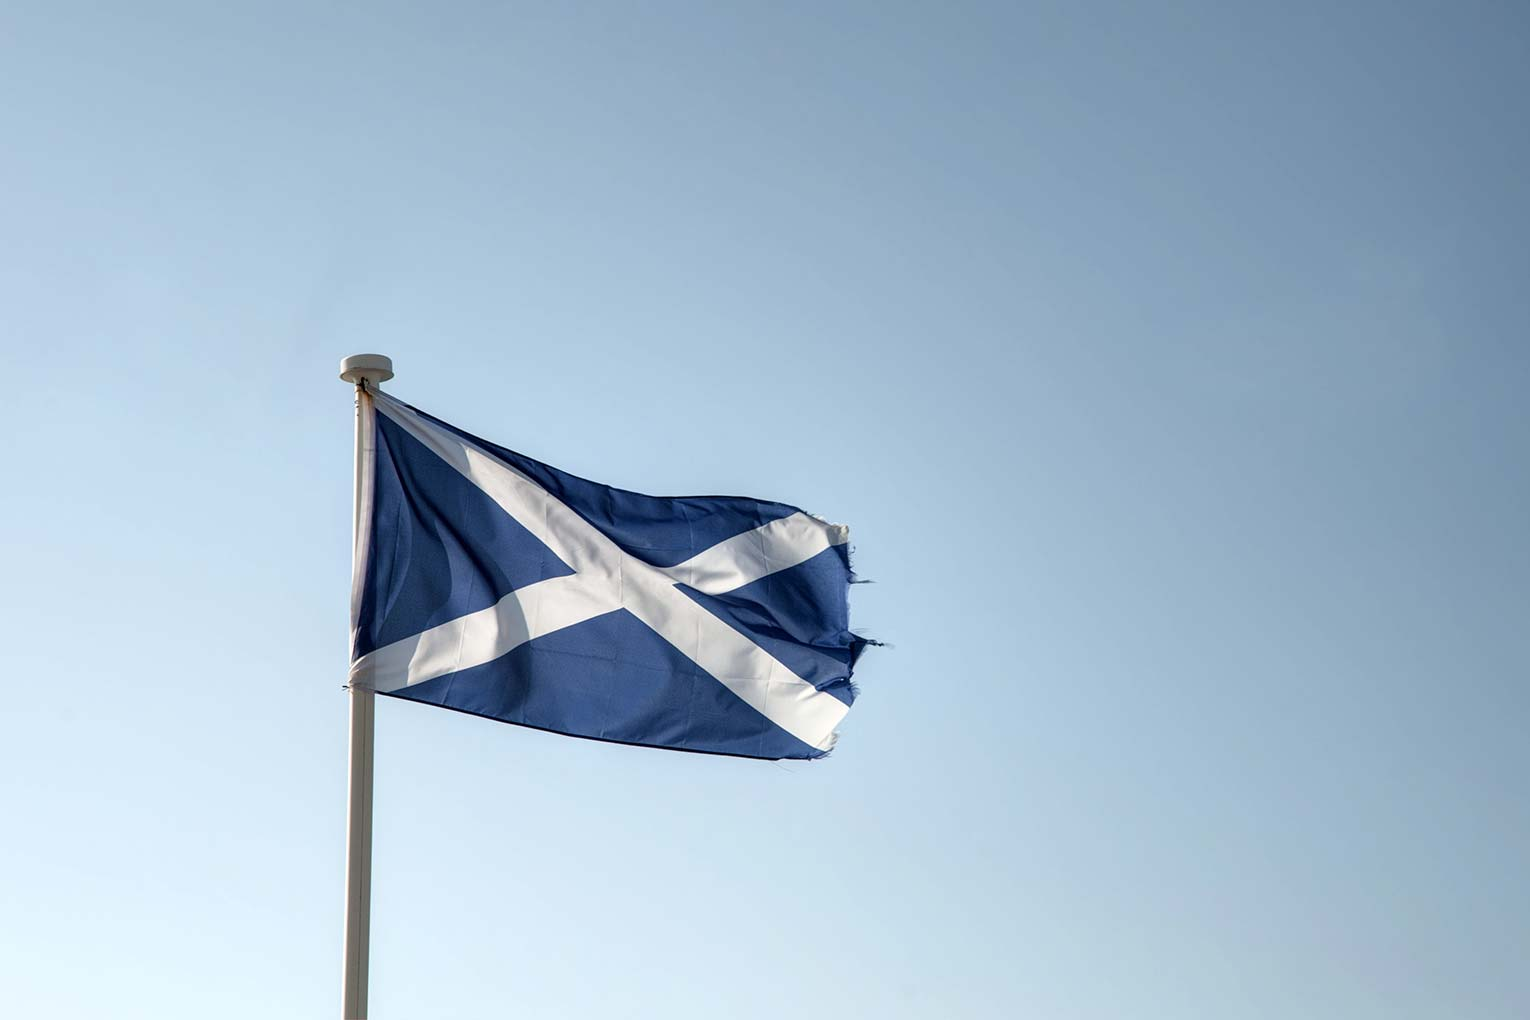 Scottish house prices growing faster than in England & Wales